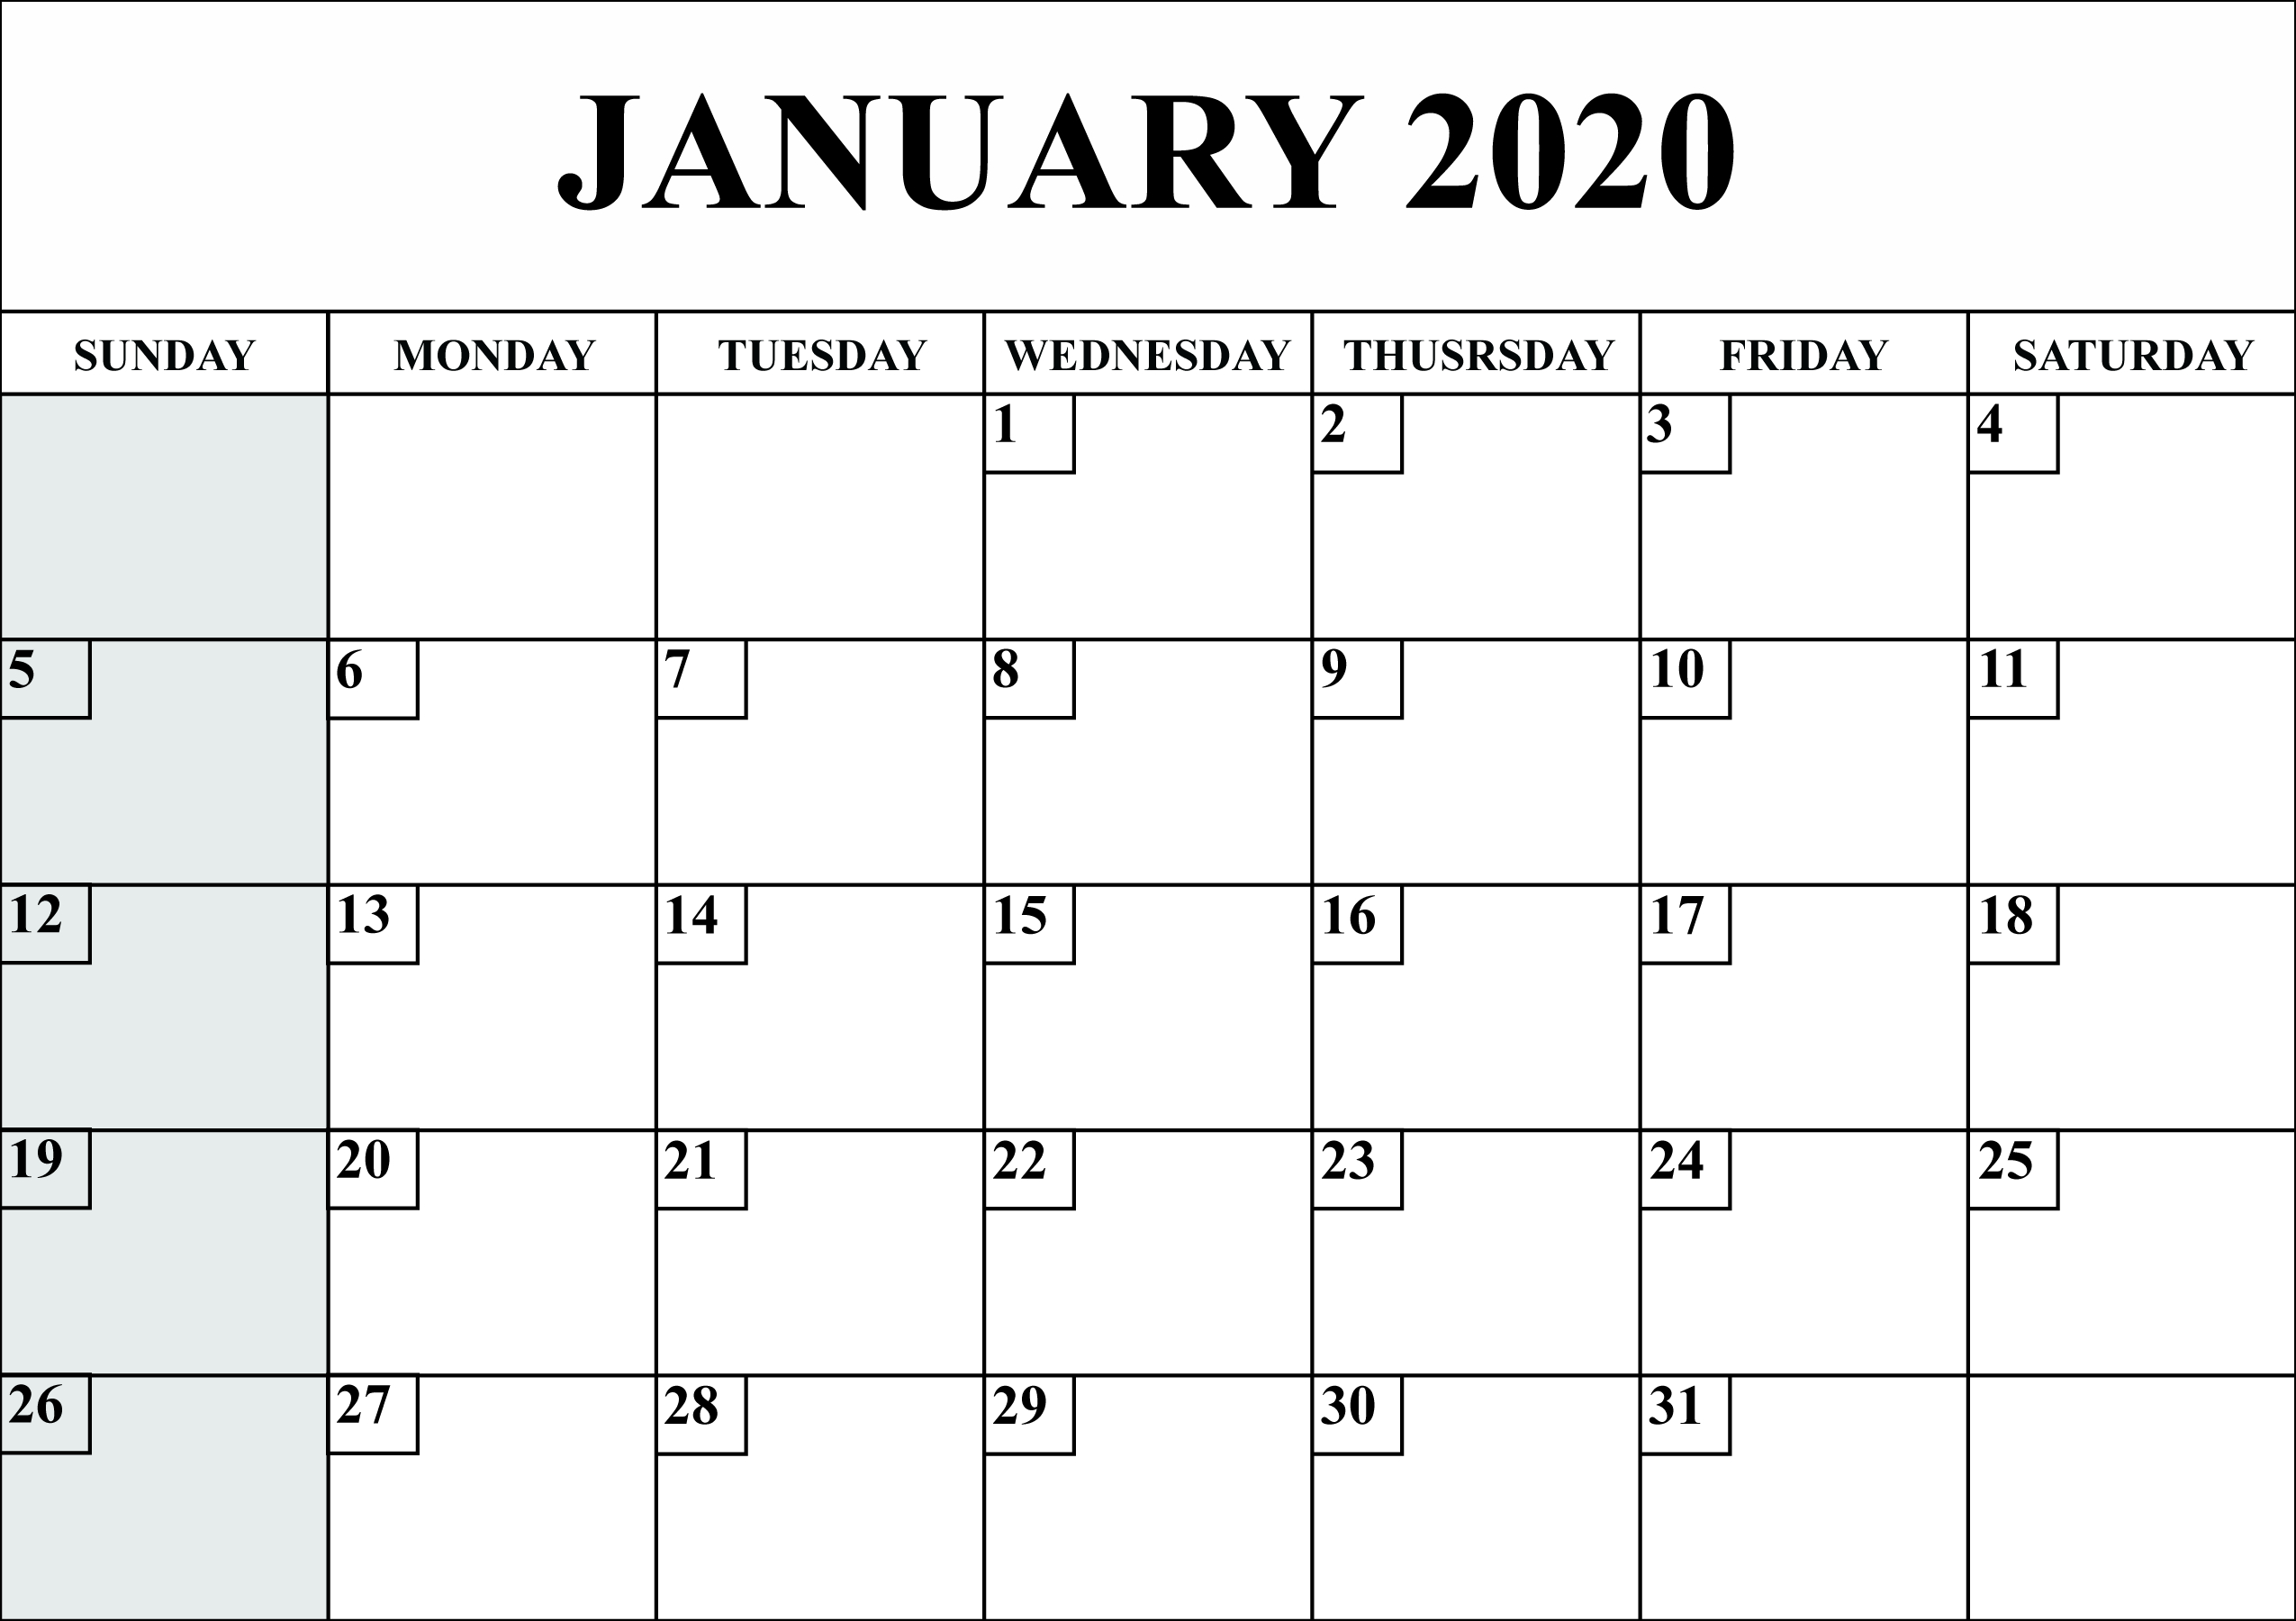 Free Blank January 2020 Calendar Printable In Pdf, Word, Excel